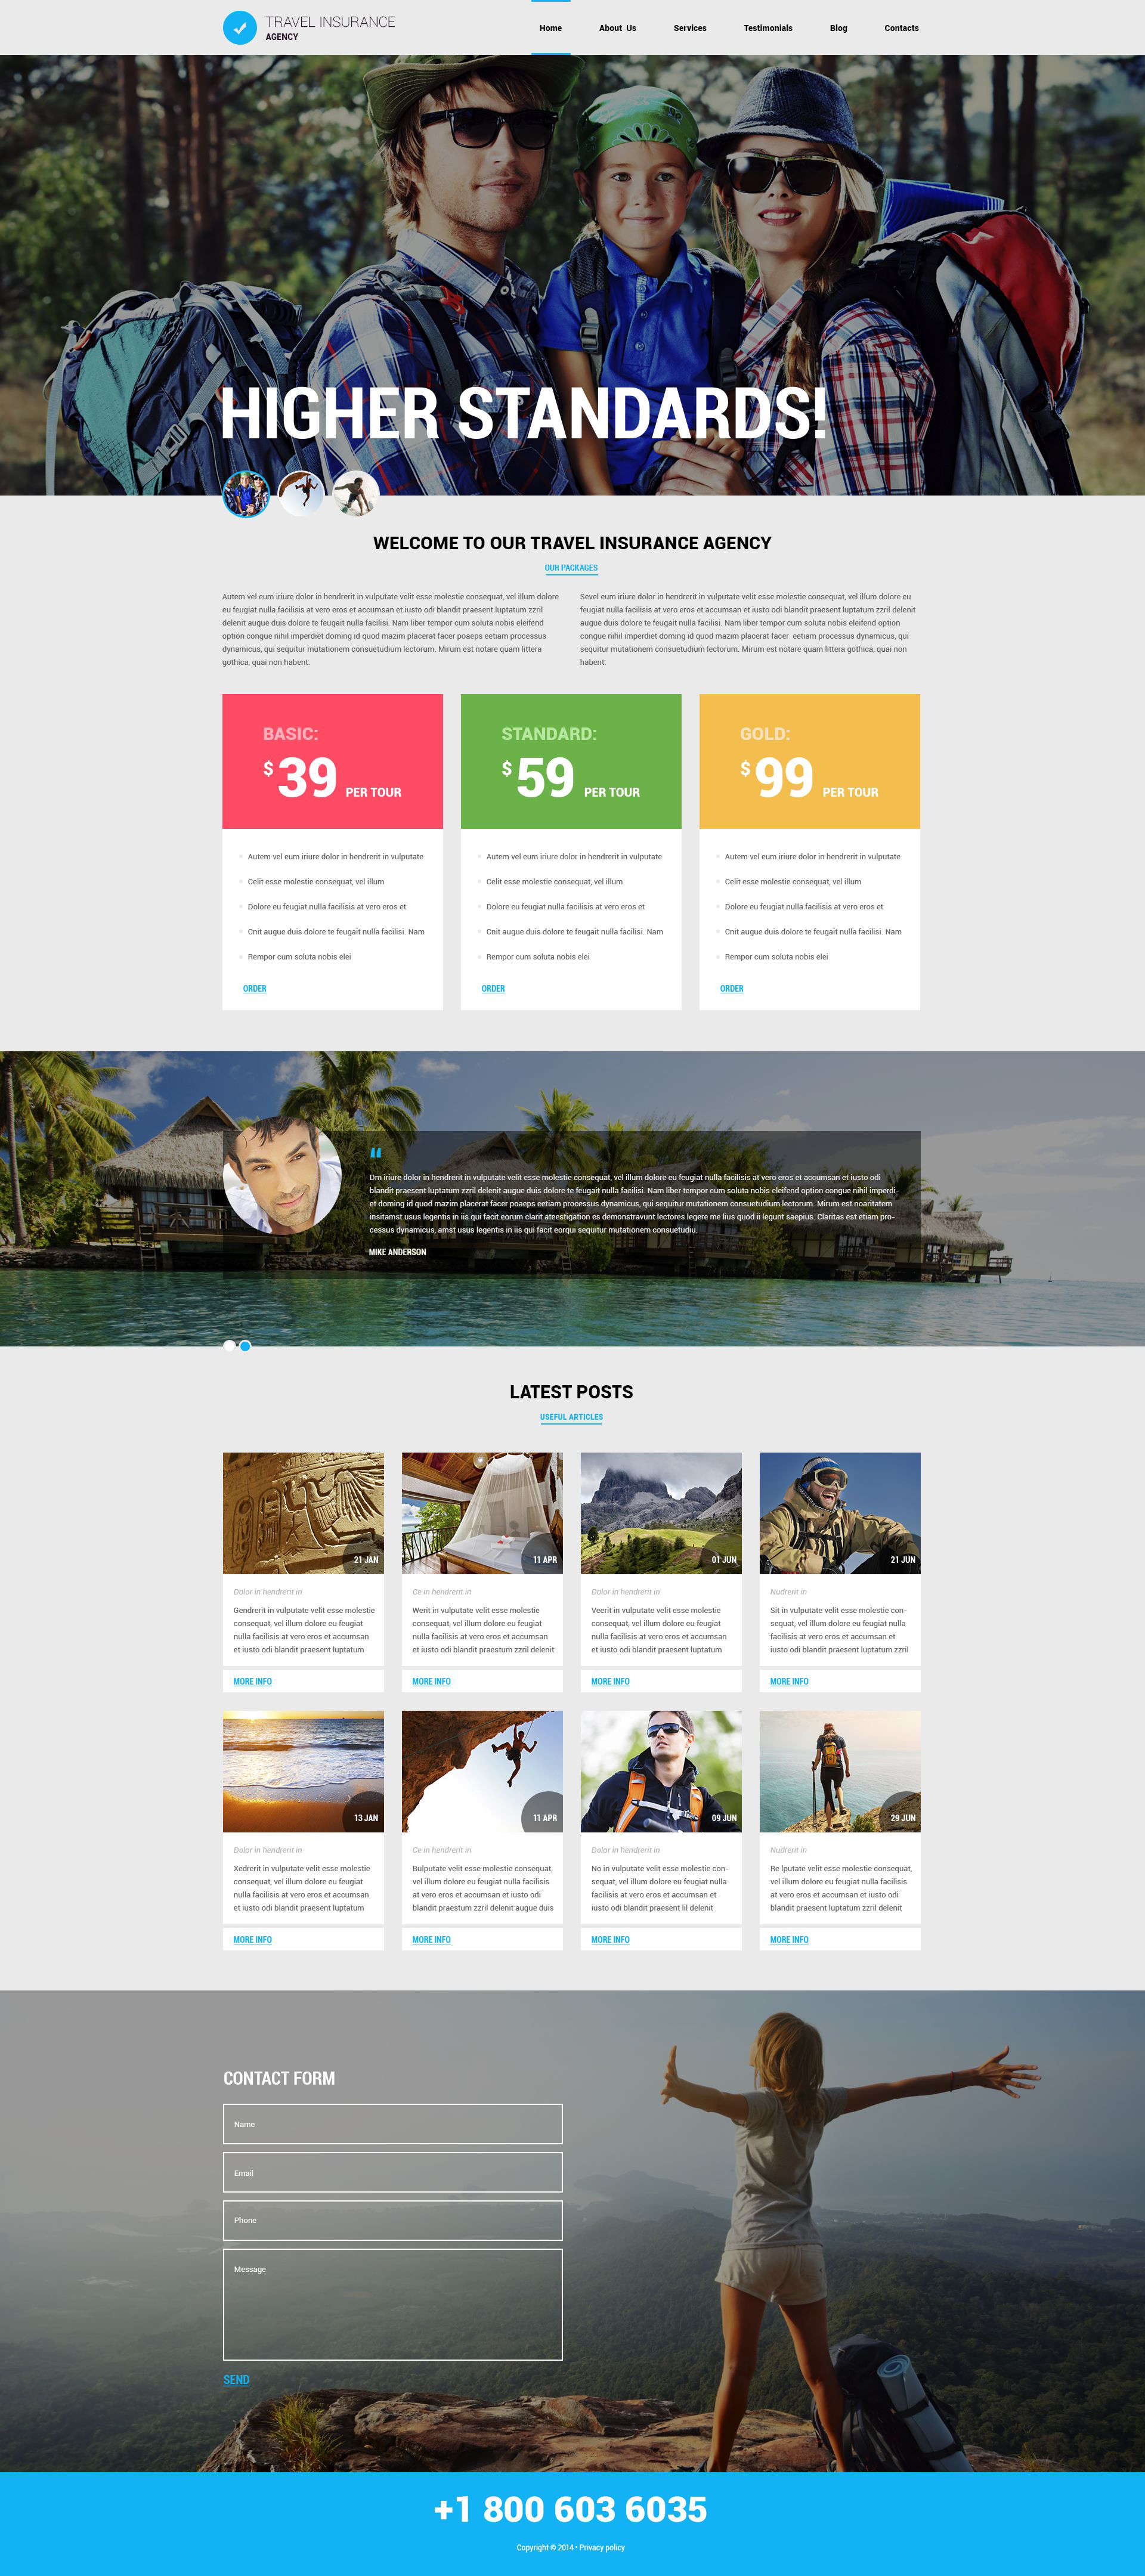 The Insurance Travel Agency Joomla Design 53362, one of the best Joomla templates of its kind (travel, most popular), also known as insurance travel agency Joomla template, compass Joomla template, tour country Joomla template, resort Joomla template, spa Joomla template, flight hotel Joomla template, car Joomla template, rental Joomla template, cruise Joomla template, sights Joomla template, reservation Joomla template, location Joomla template, authorization Joomla template, ticket Joomla template, guide Joomla template, beach Joomla template, sea Joomla template, relaxation Joomla template, recreation Joomla template, impression Joomla template, air Joomla template, liner Joomla template, traveling Joomla template, apartment Joomla template, vacation Joomla template, rest Joomla template, comfort Joomla template, destination Joomla template, explorat and related with insurance travel agency, compass, tour country, resort, spa, flight hotel, car, rental, cruise, sights, reservation, location, authorization, ticket, guide, beach, sea, relaxation, recreation, impression, air, liner, traveling, apartment, vacation, rest, comfort, destination, explorat, etc.